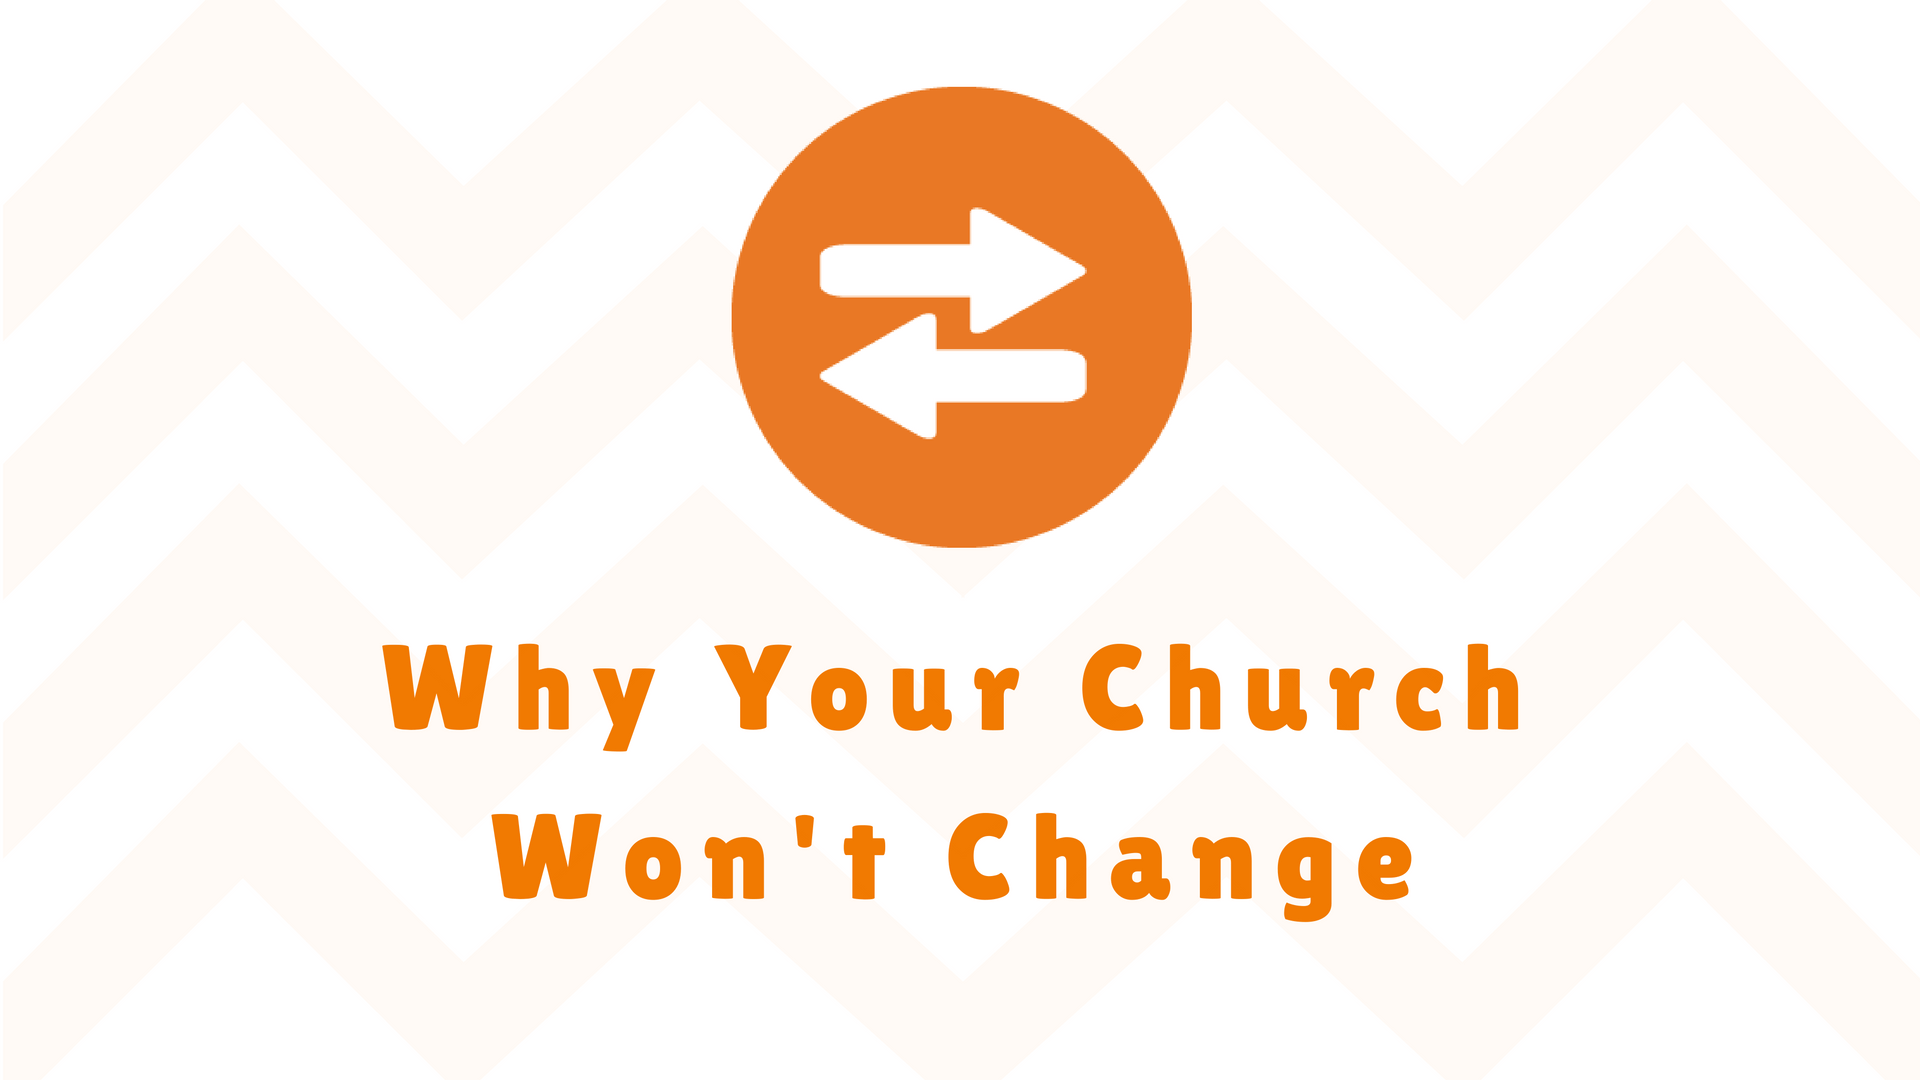 Why Your Church Won't Change